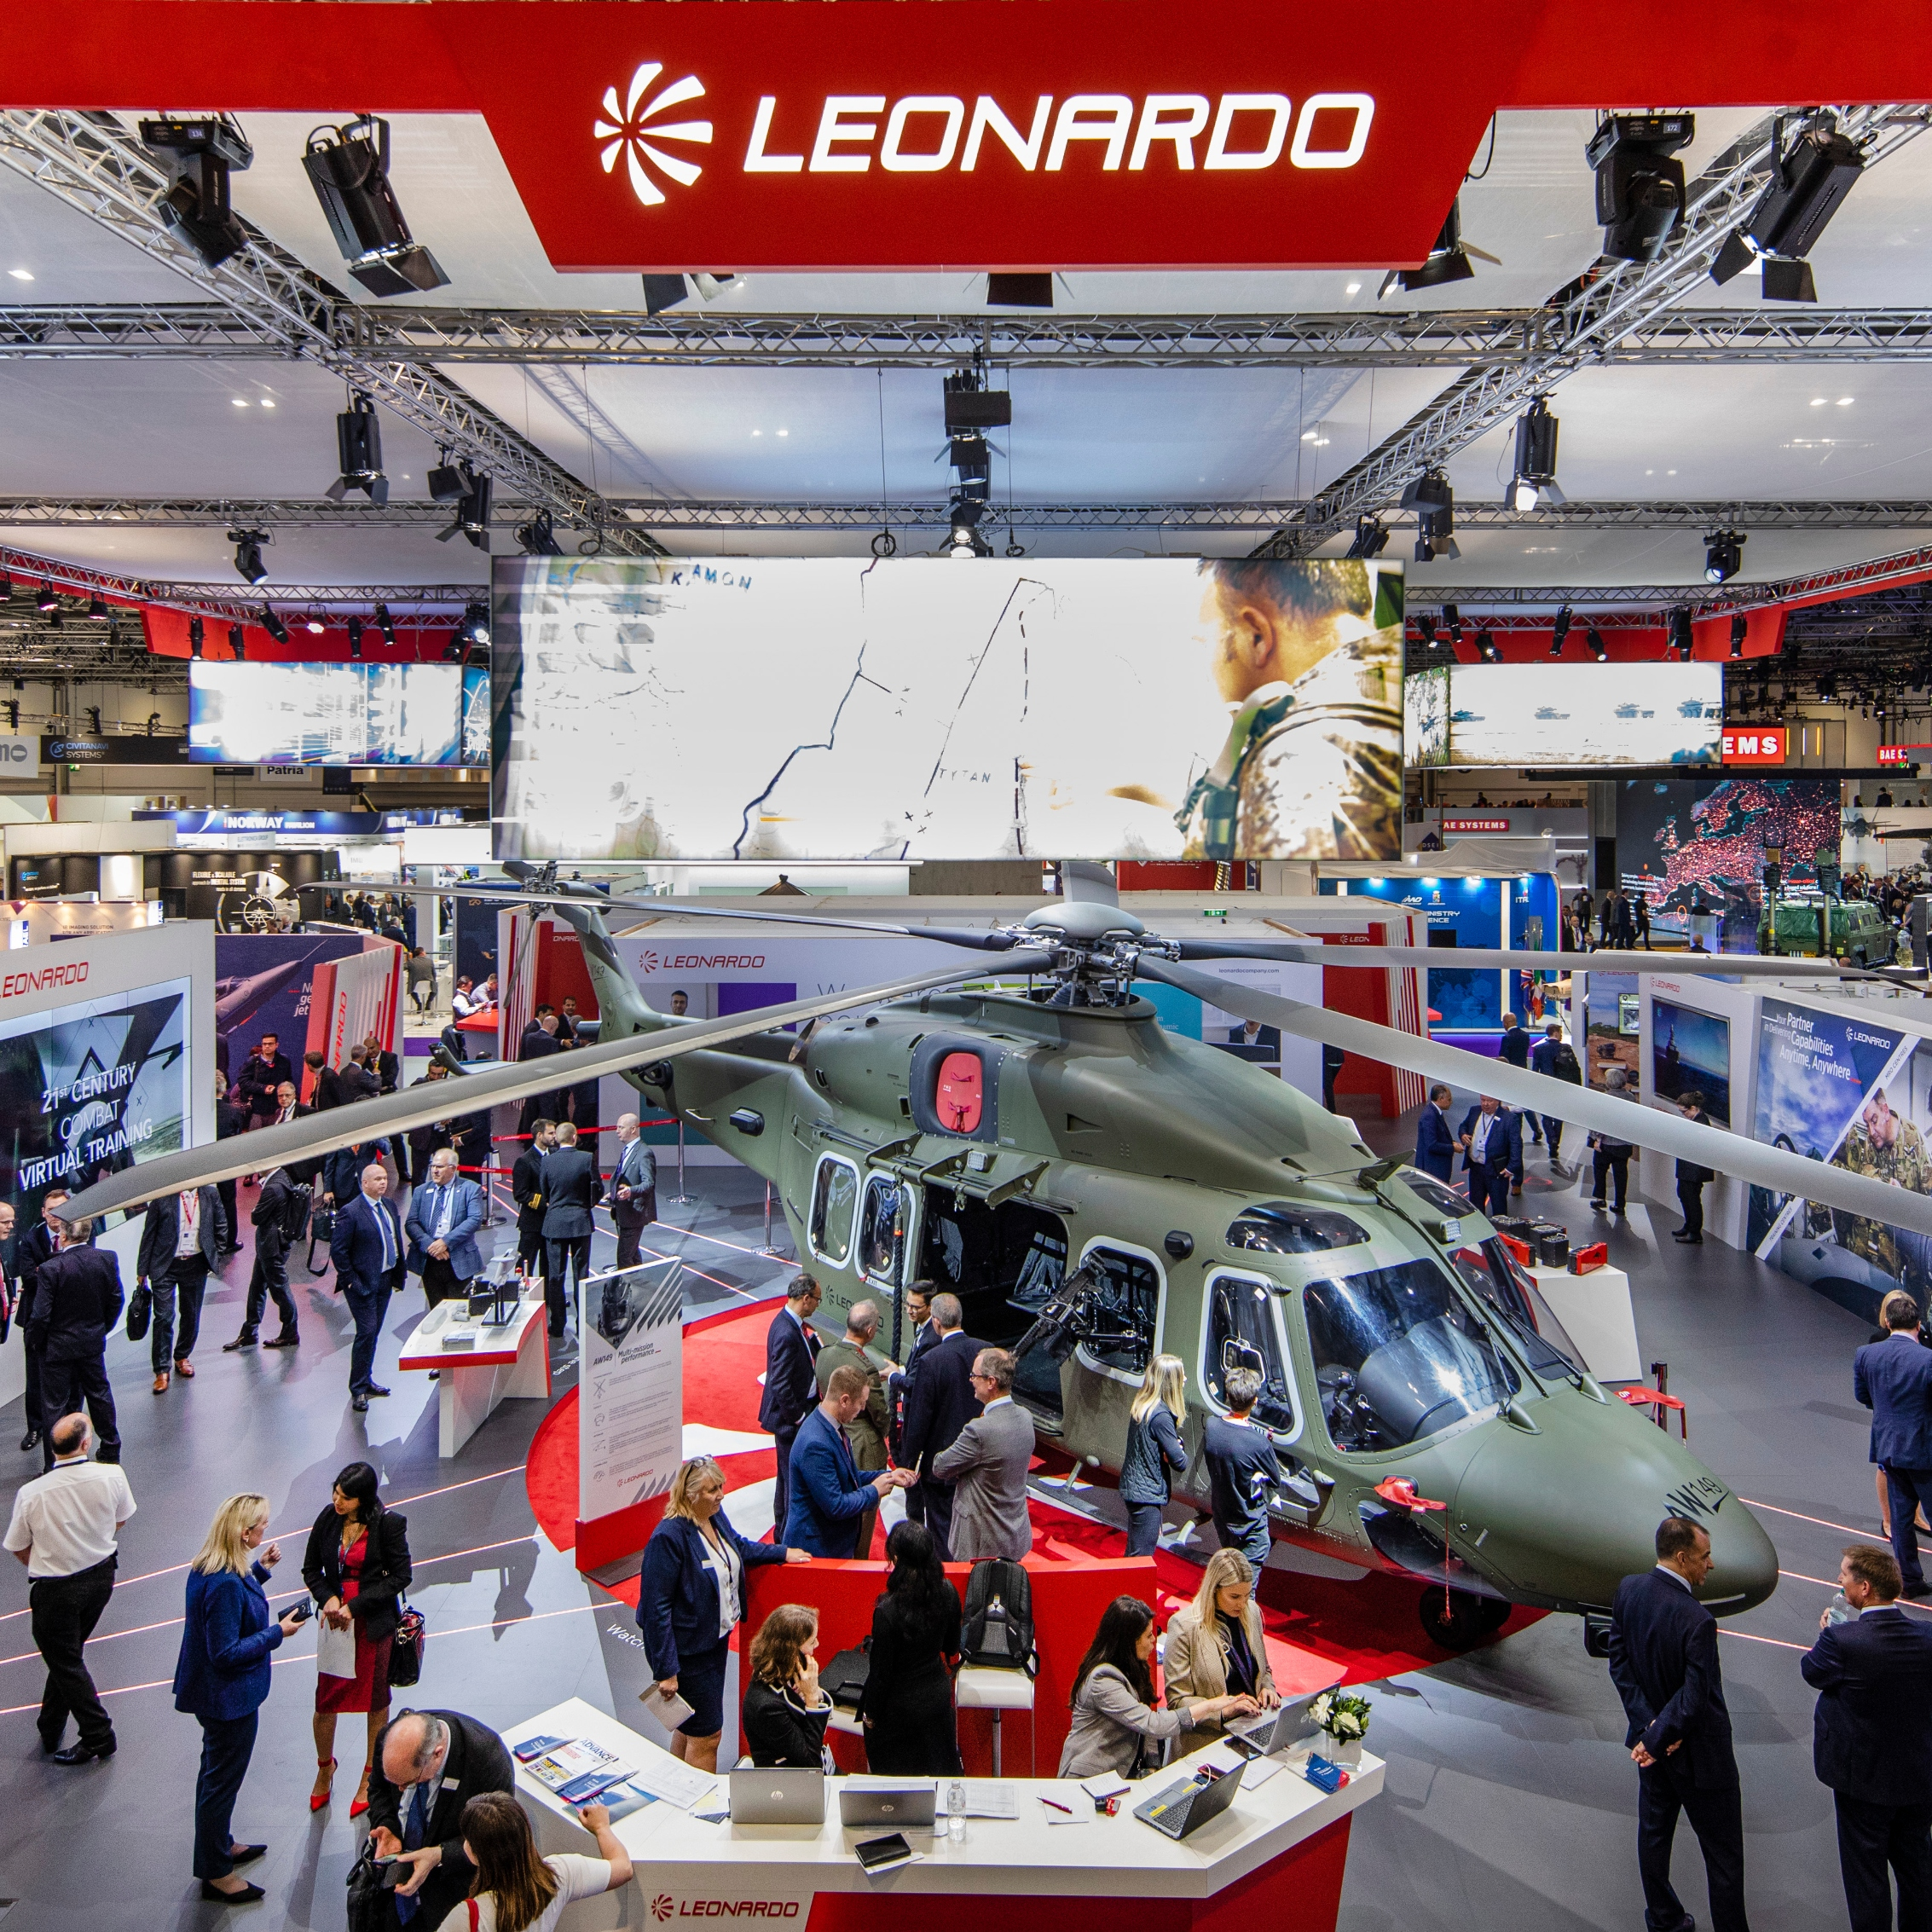 https://info.clarion-defence.com/e/339191/2021-exhibitors/3bp84c/373347014?h=oVNmnG06BHO0m6M_ox6TVtX4QcBLBm1HVl7YJHDNd3w